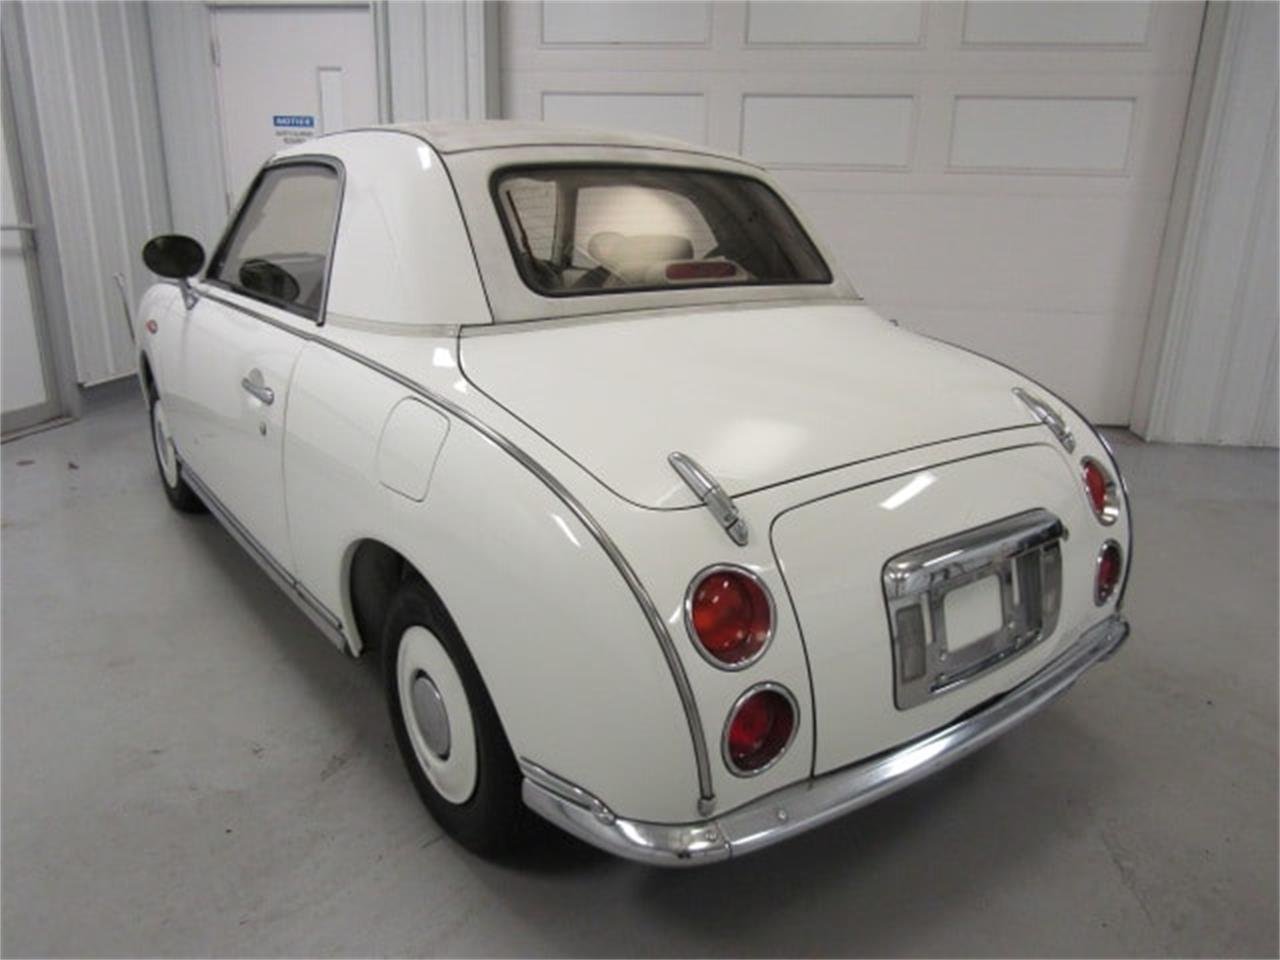 Large Picture of 1991 Nissan Figaro located in Virginia - $8,900.00 - K985